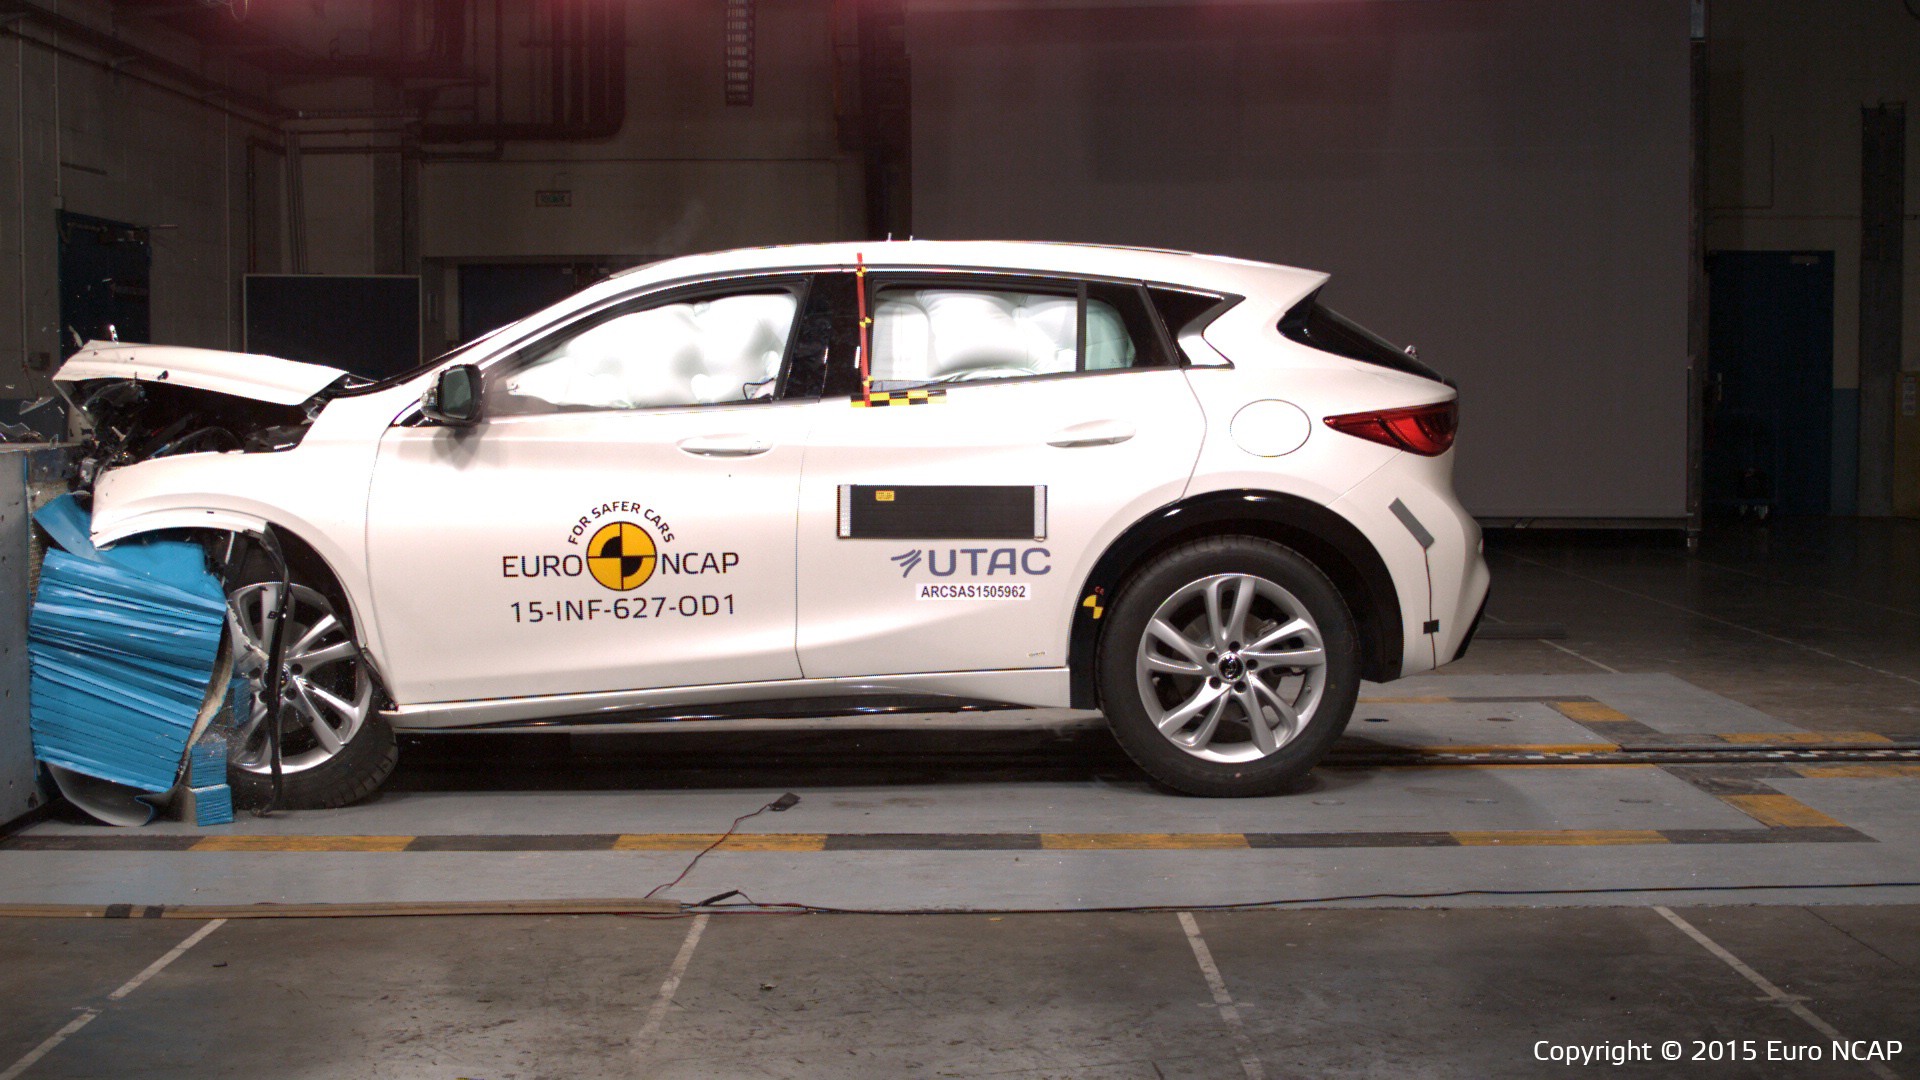 2015 Nhtsa Safety Ratings For Suvs.html | Autos Post